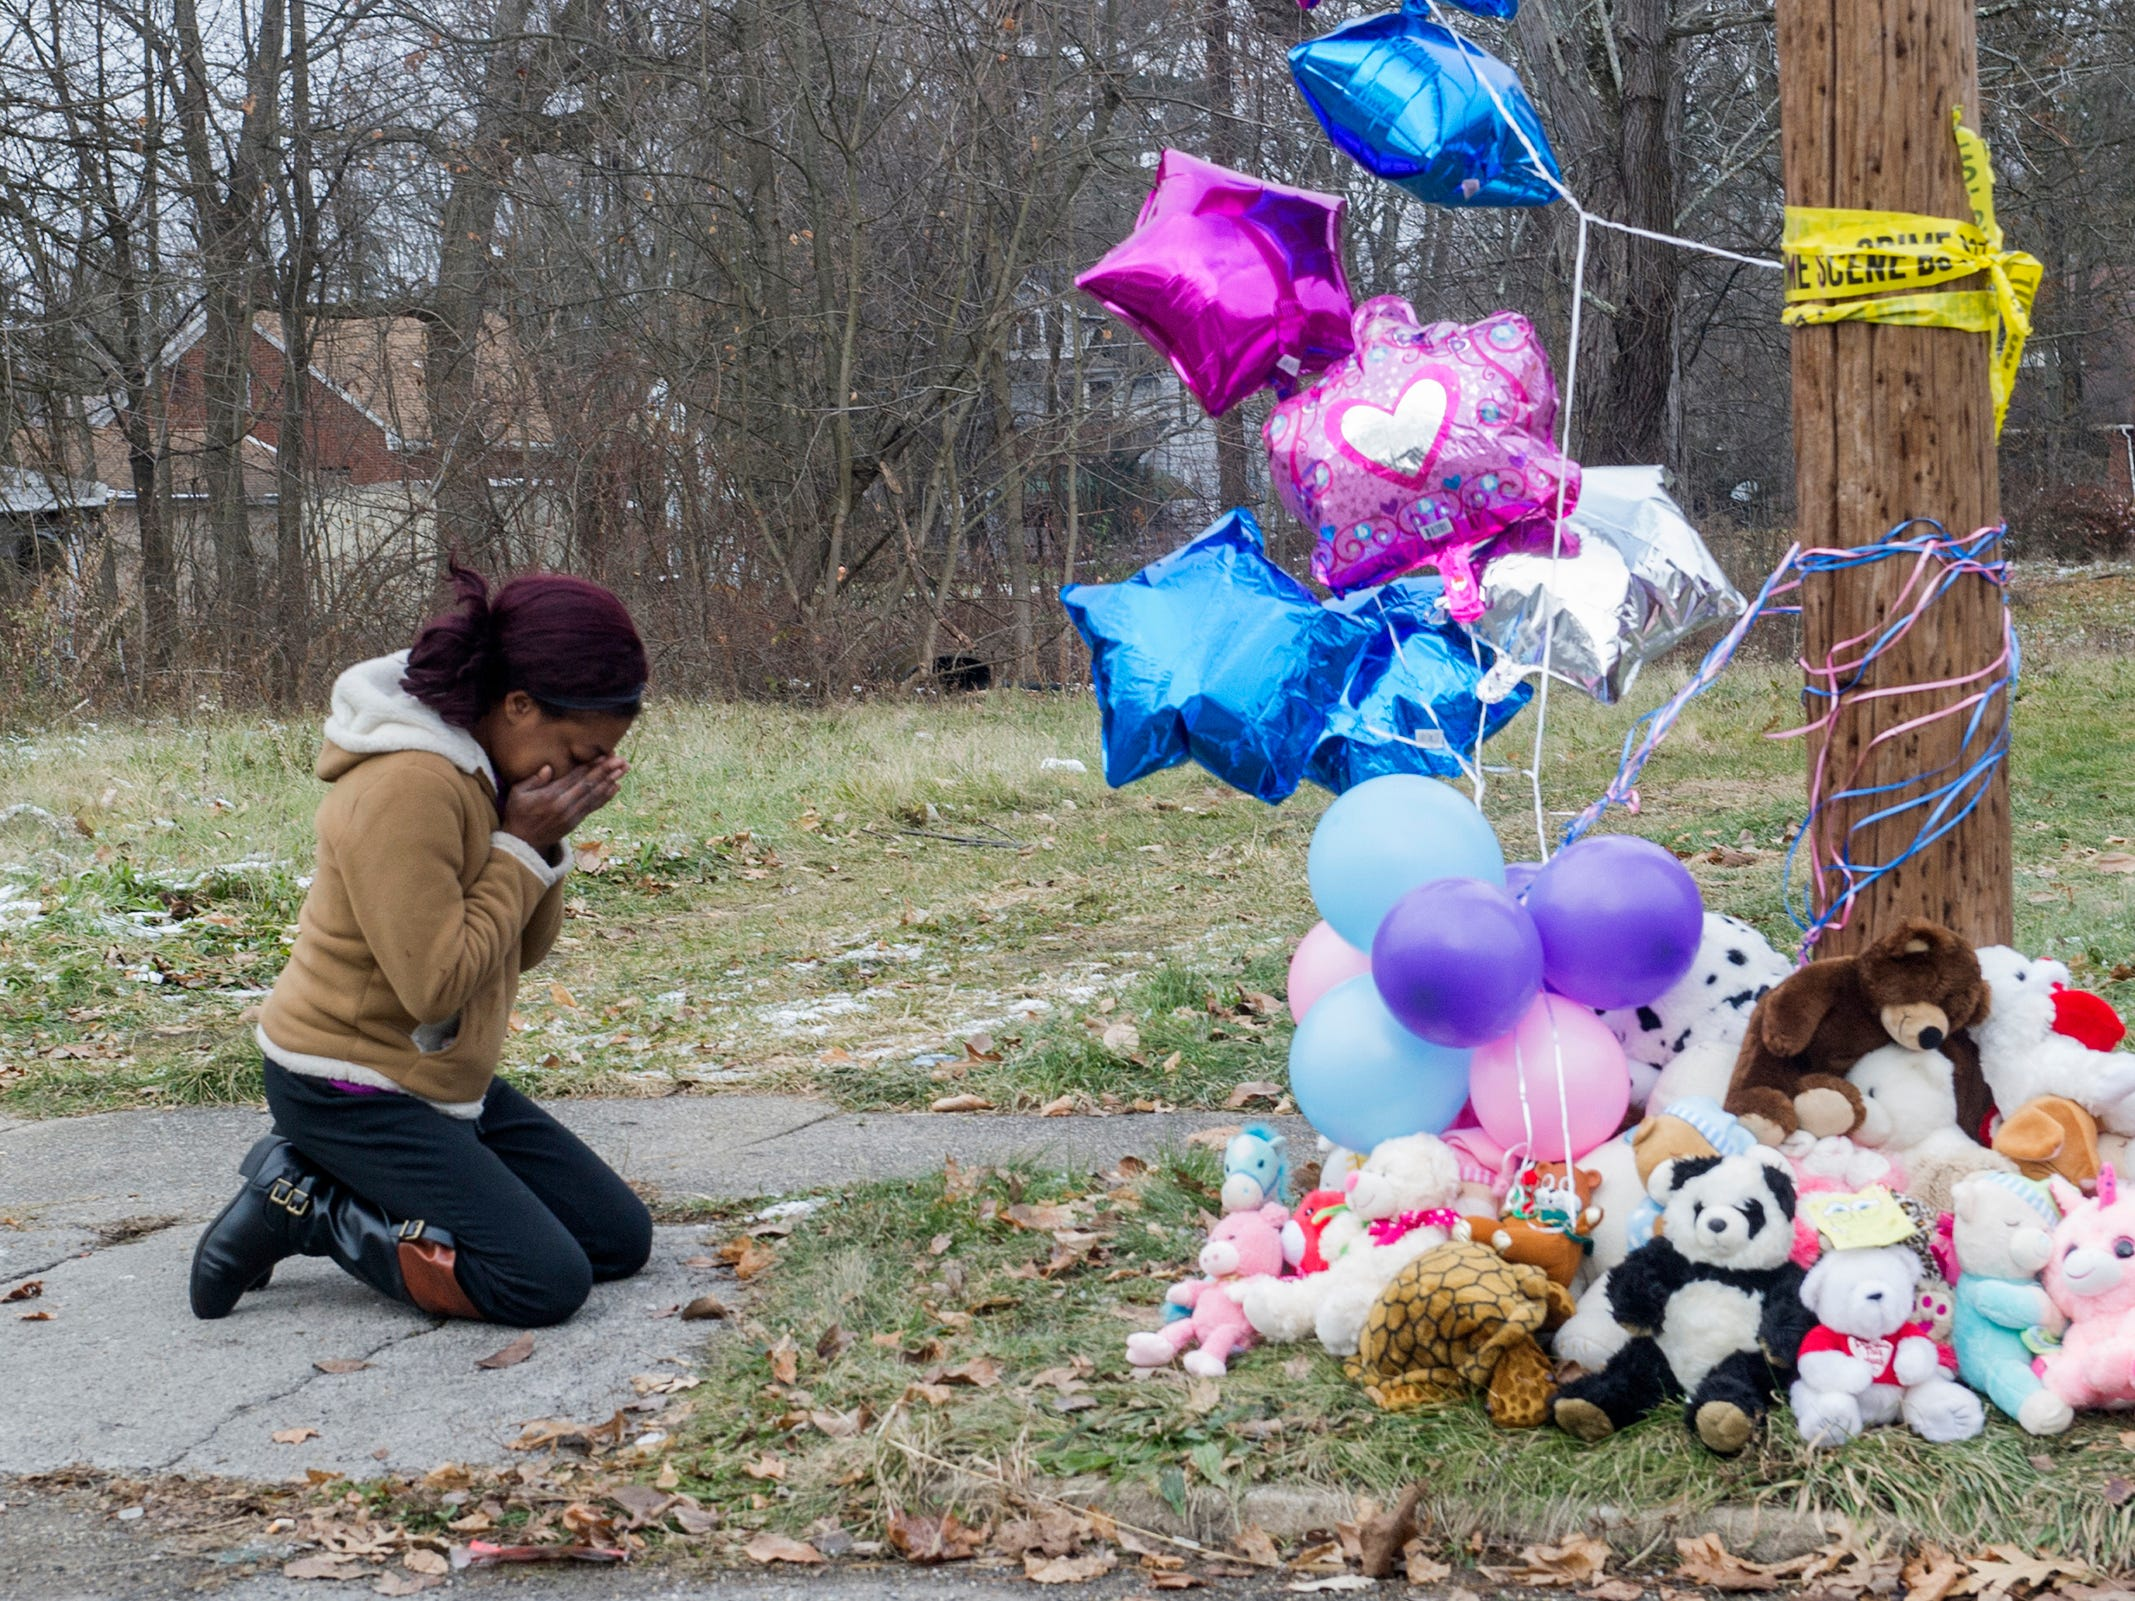 Chandriel Strong, 29, breaks down while paying respects at a deadly fire scene Monday, Dec. 10, 2018, in Youngstown, Ohio. The fire broke out on Sunday night killing 5 children, ages 9, 3, 2, and 1-year-old twins and injuring the mother who jumped out from the second-floor window.